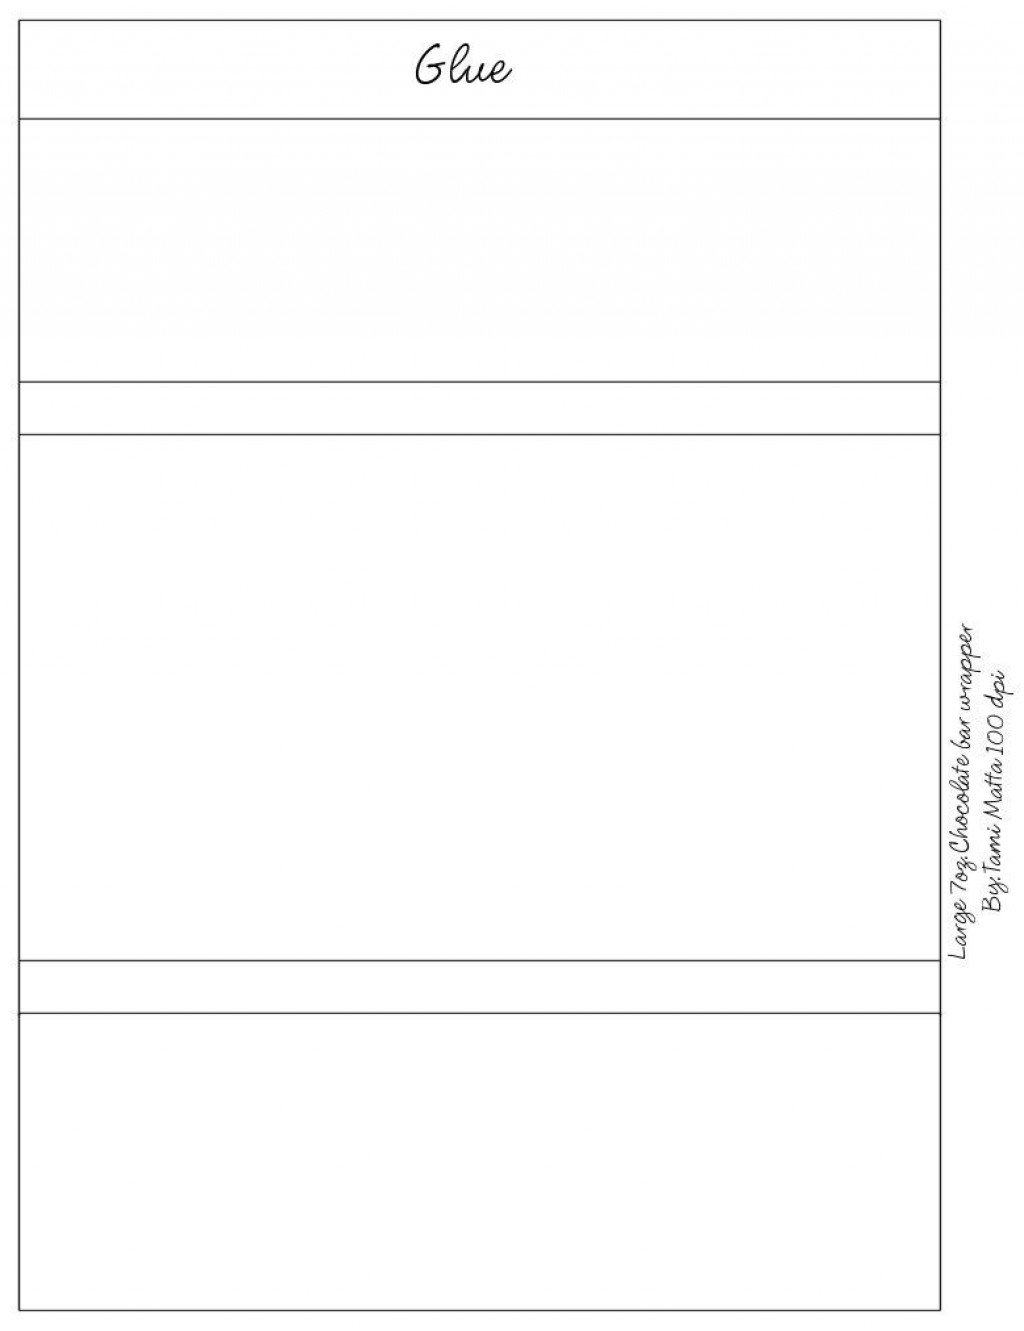 005 Frightening Candy Bar Wrapper Template For Word Free Image  Printable MicrosoftLarge